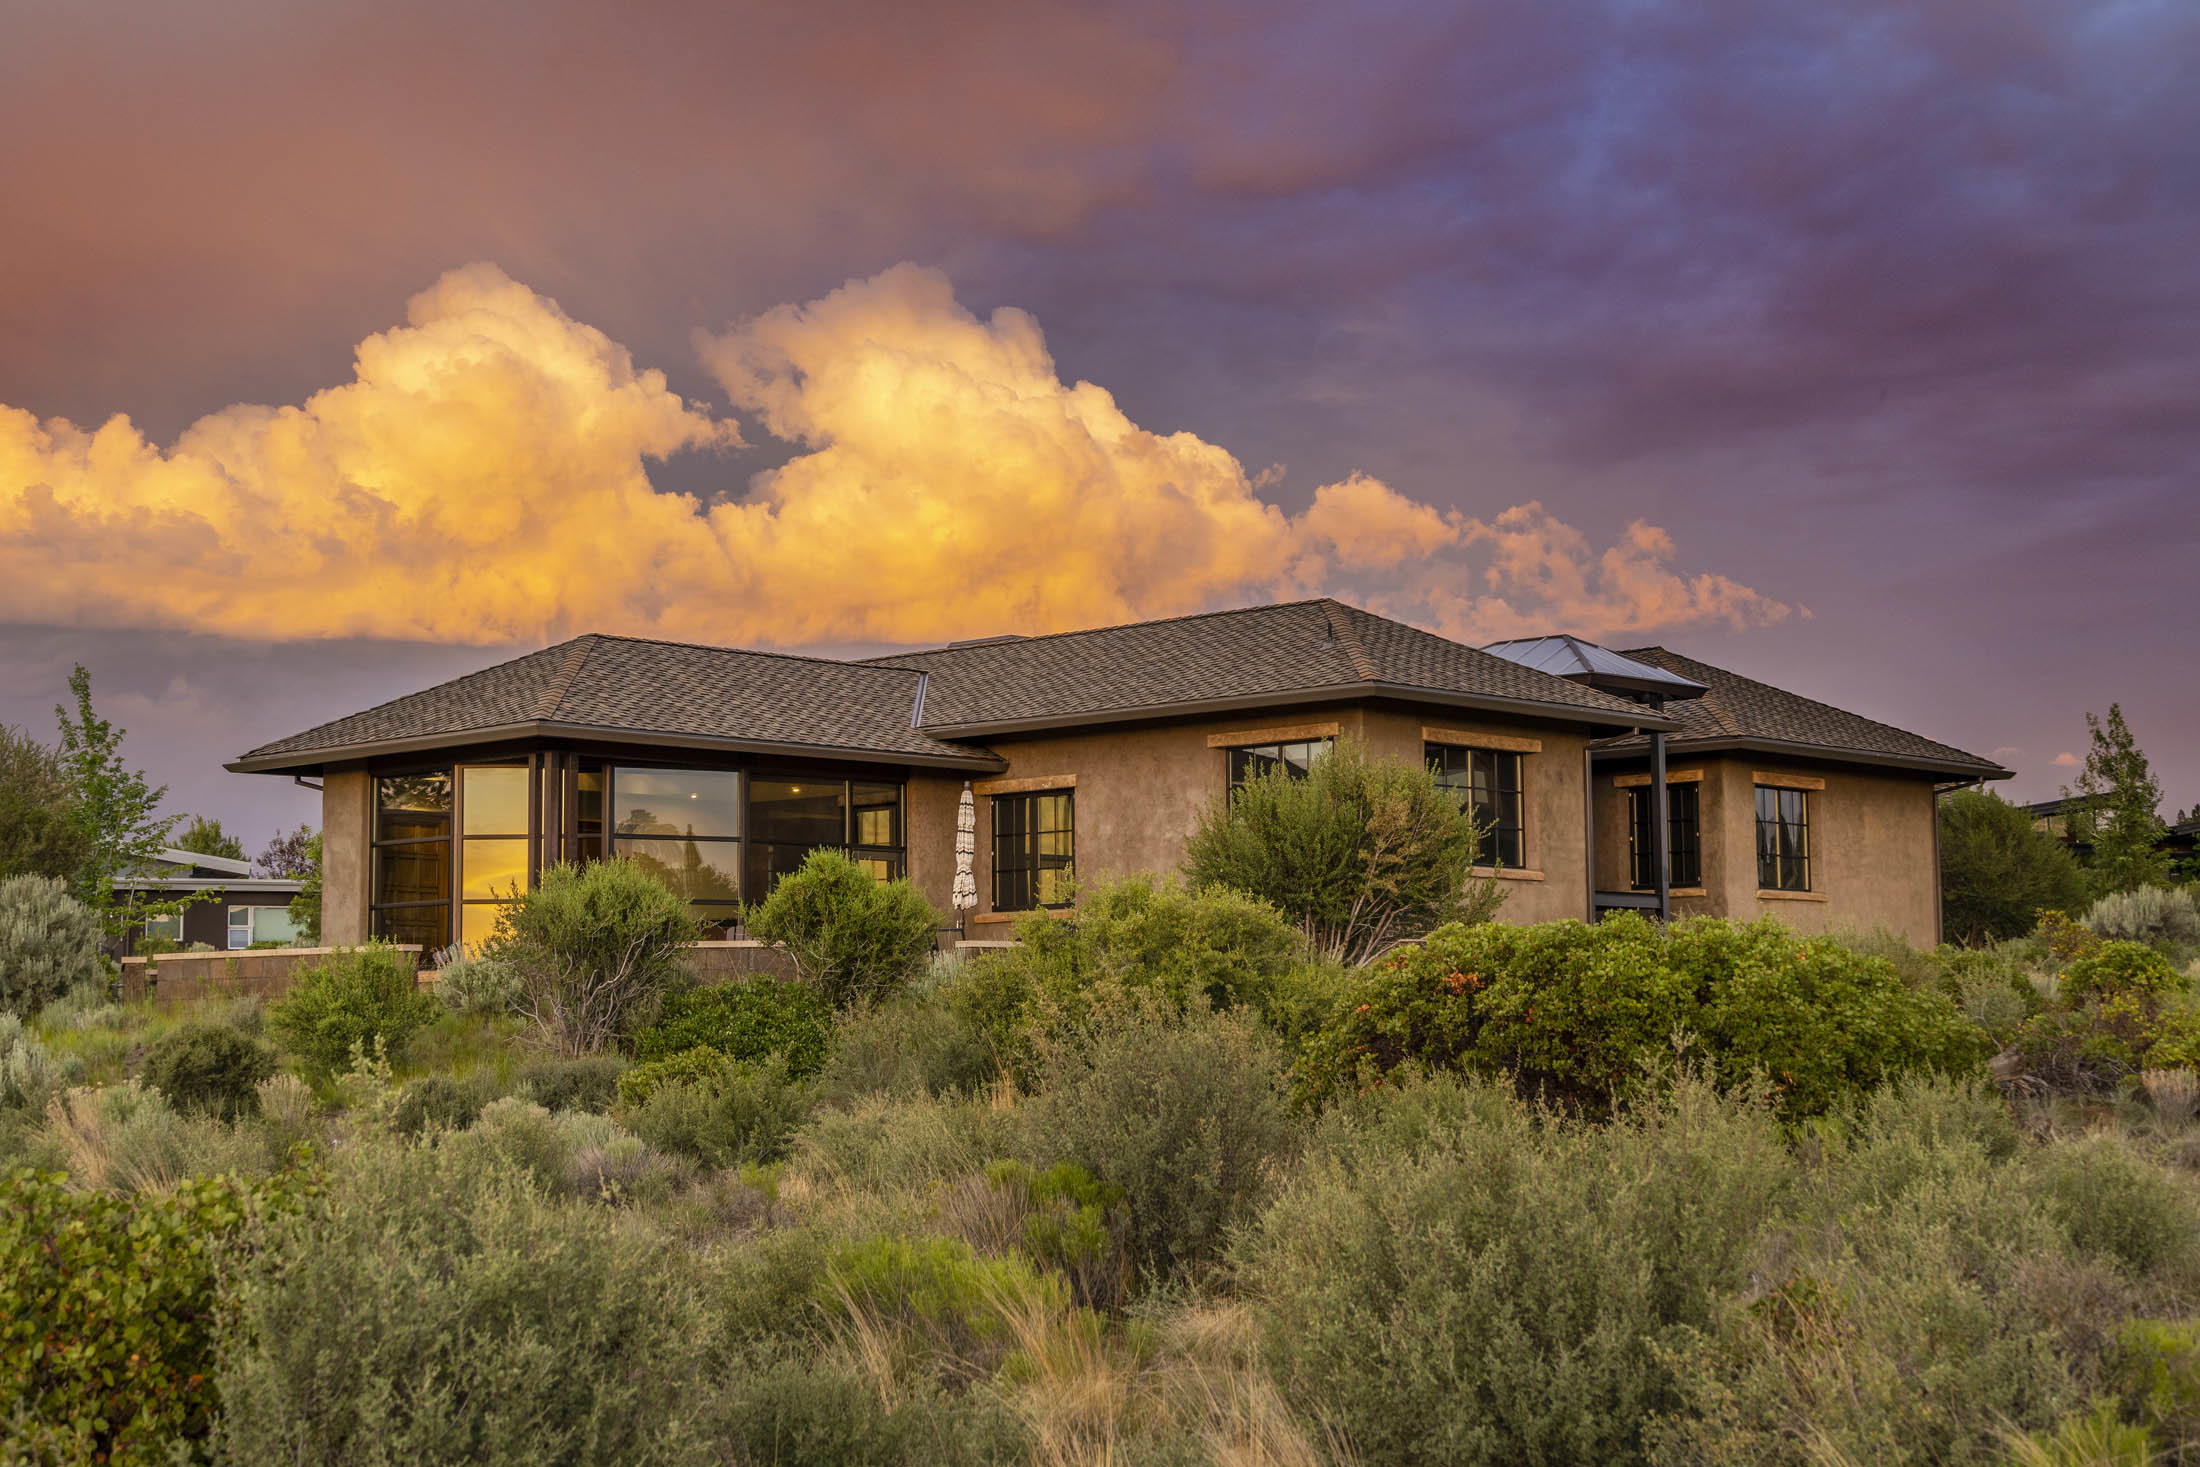 Artfully designed to maximize 180 degree mountain views, set against the majestic backdrop of Shevlin Park and theDeschutes National Forest beyond, this Rosewood home is both unique and exceptional. Here, a rounded scheer wall,enclosed courtyard, and west-facing glass-enclosed dining room evoke a European flair and a main level lifestyle. In the dining room you will find a wall of windows overlooking all the cascade mountains with an additional raised seating nook great for morning sunrises. This open floor plan is great for entertaining both on the main floor and downstairs with a daylight basement setting, both floors include wet bars, extensive storage and wired surround sound for all occasions. This exquisite home offers seamless granite countertops throughout, pecan wood flooring, vertical grain fir doors,heated flooring, 3 heated zones for all season comfort, an additional office & flex space, all surrounding a beautiful courtyard with fountain.